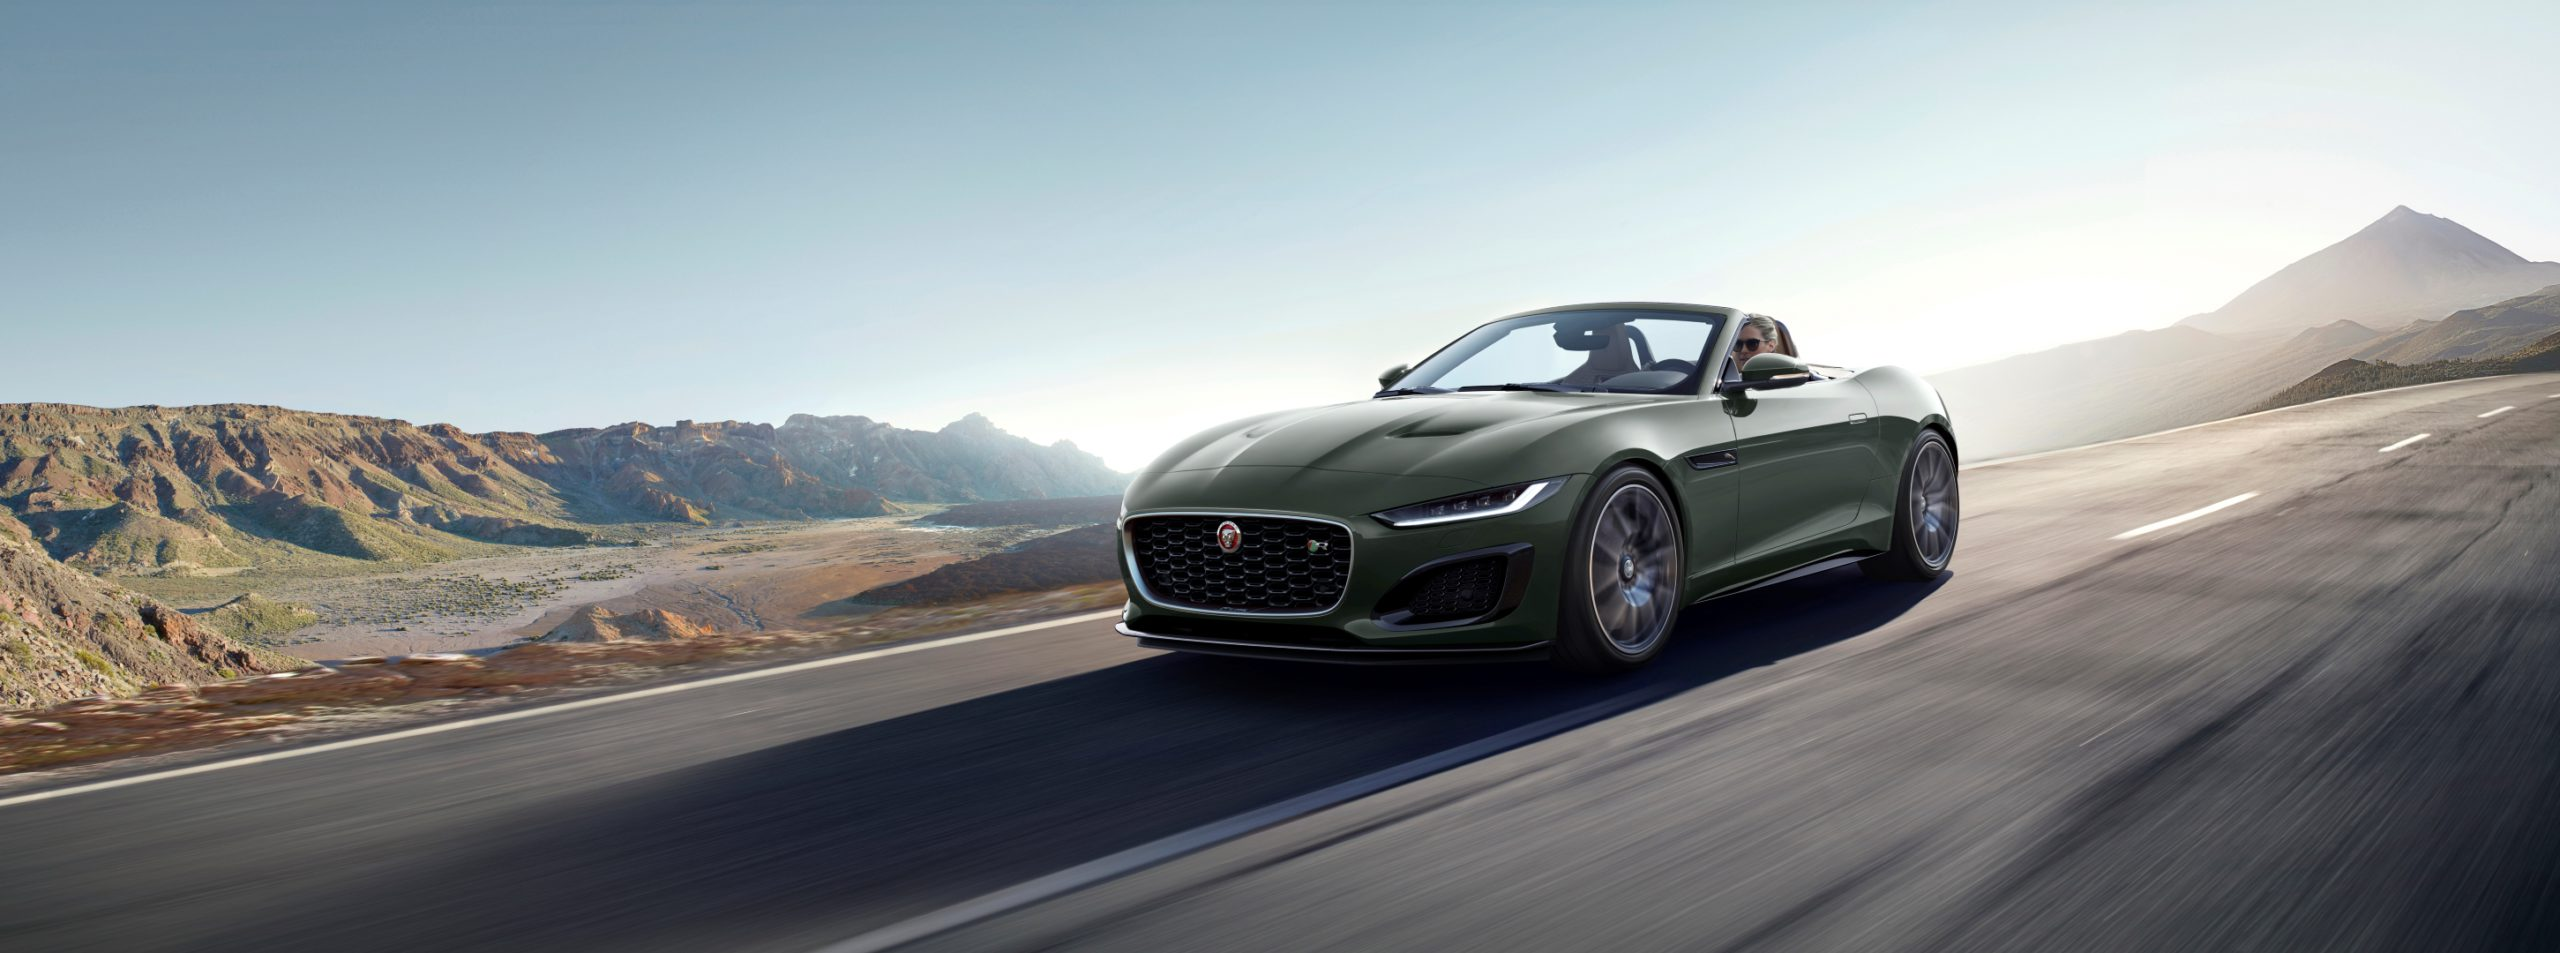 2021 Jaguar F-Type Heritage 60 Edition